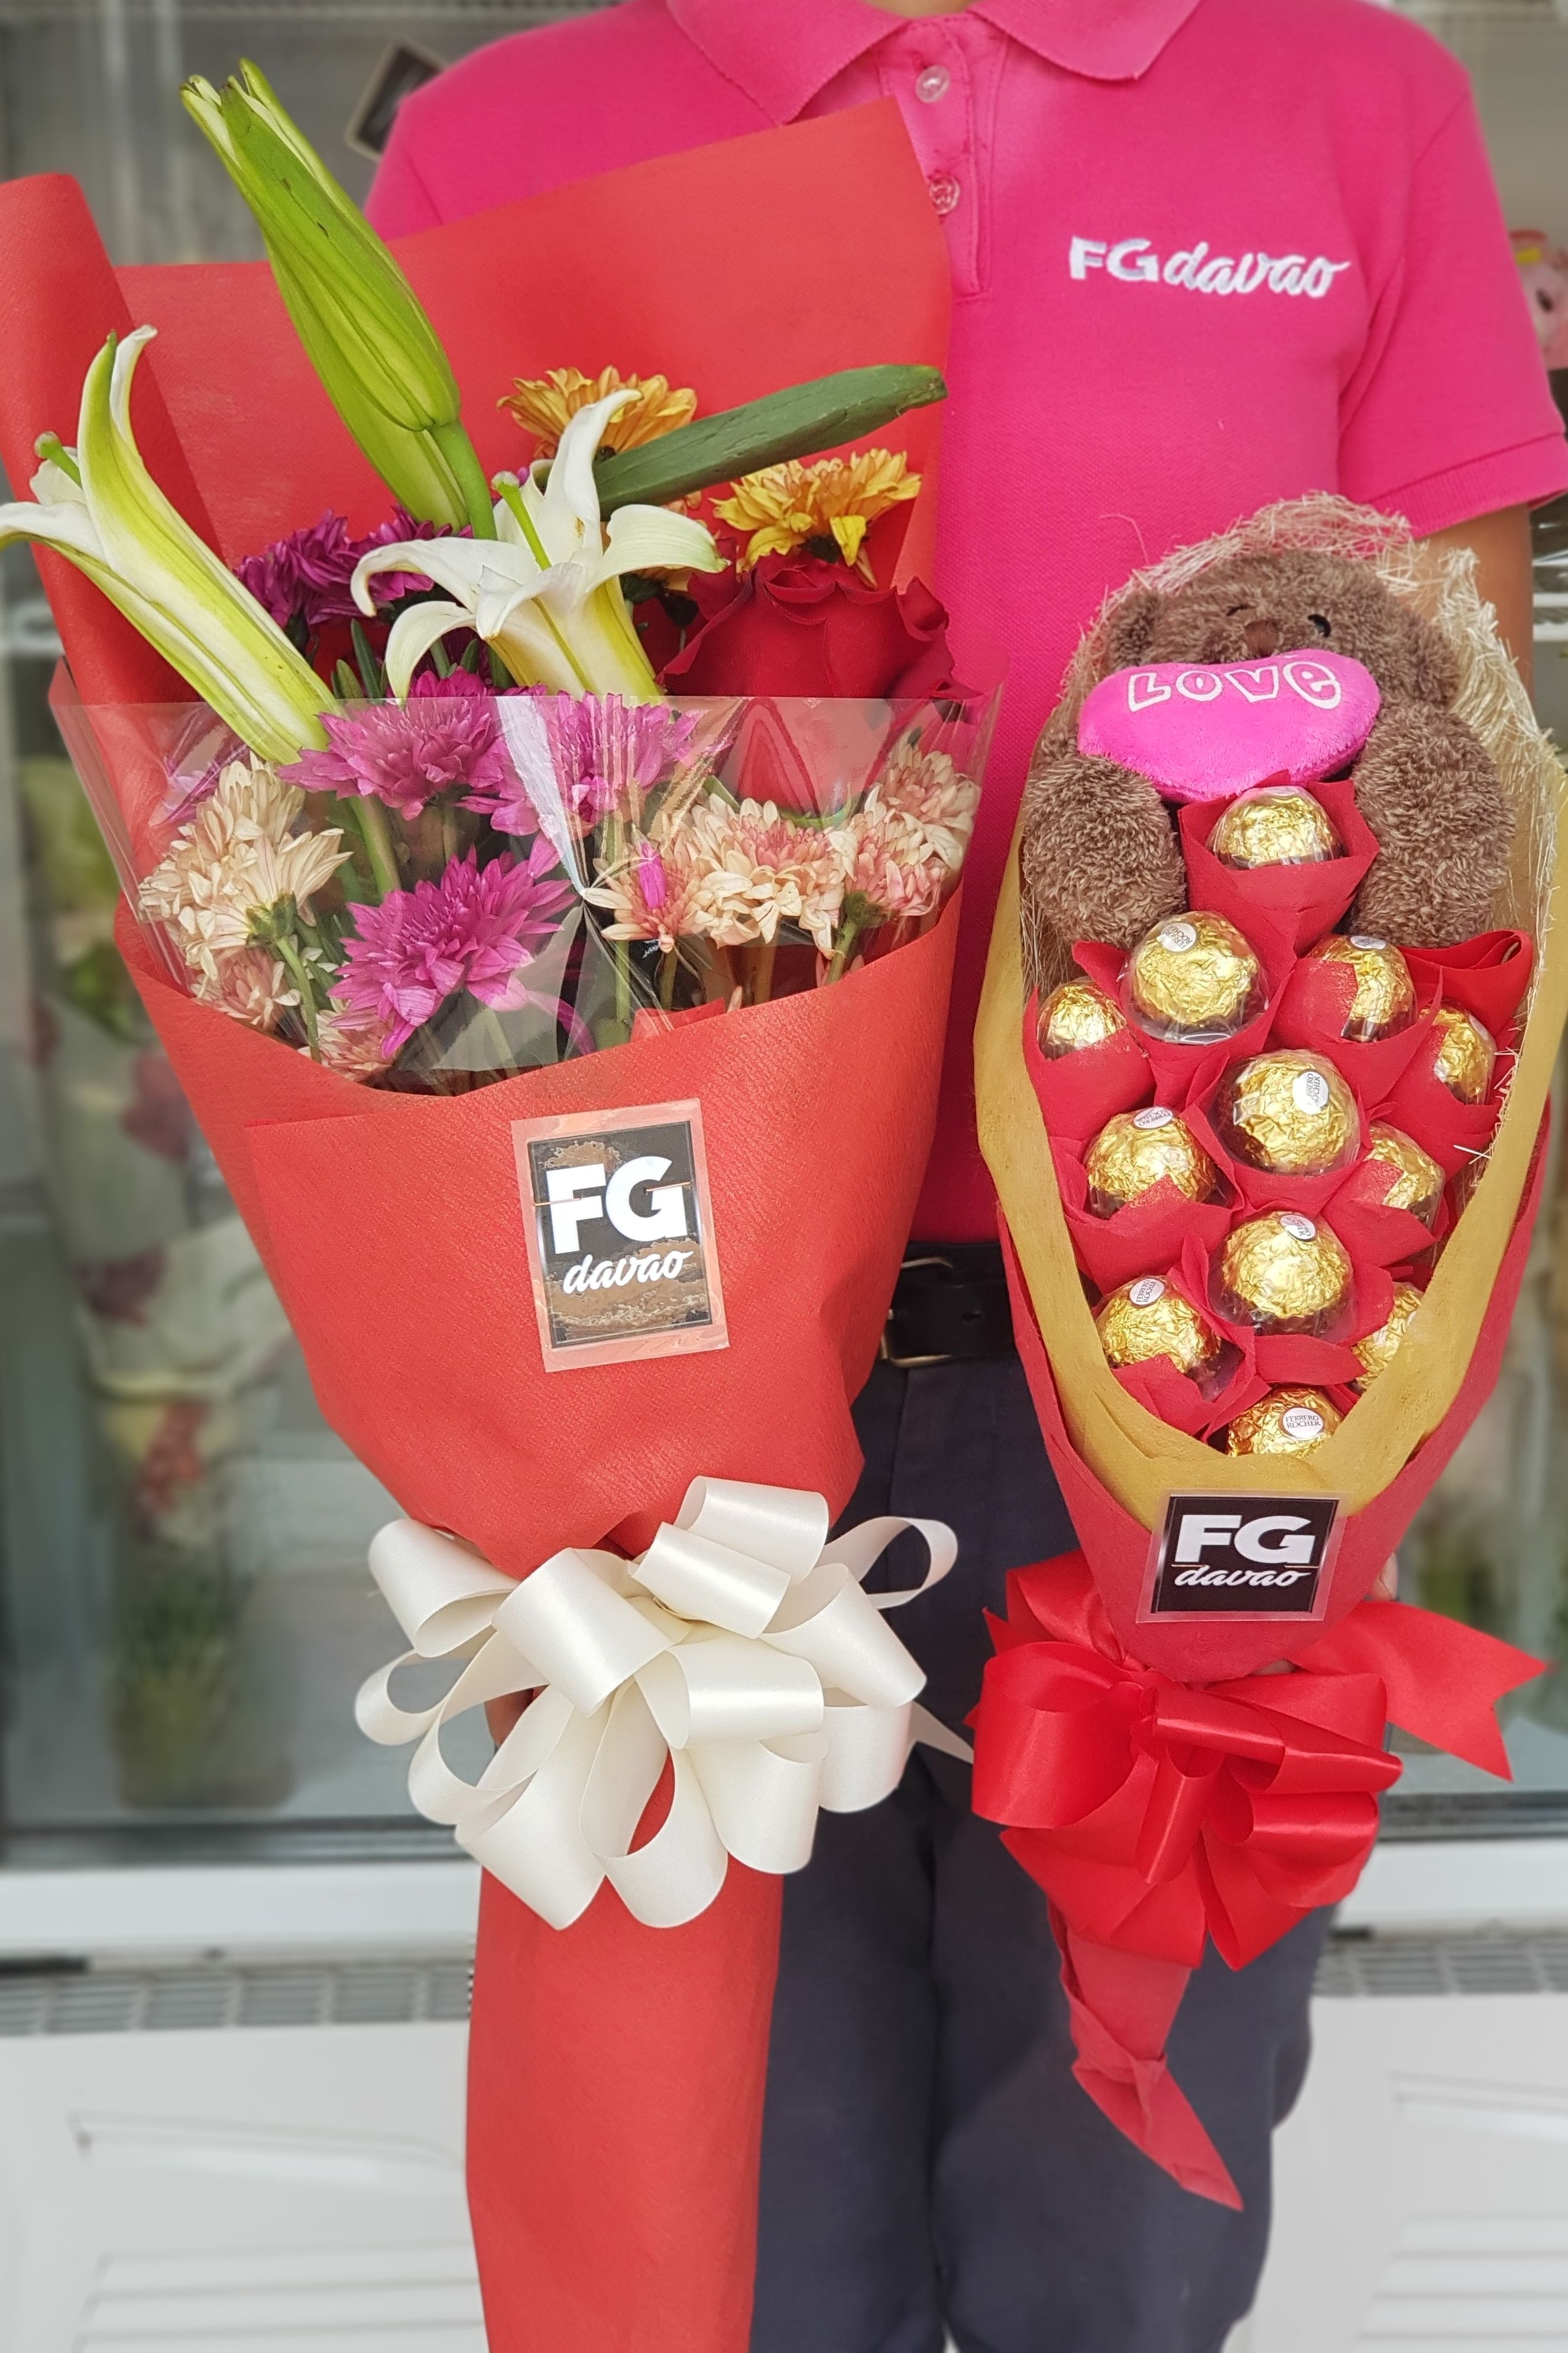 Flowers And Chocolate Bouquet Price List Www Fgdavao Com Fb Page Fg Davao Ig Page Fg Davao Store Address 123 Lop Online Flower Shop Sand Gifts Flower Shop